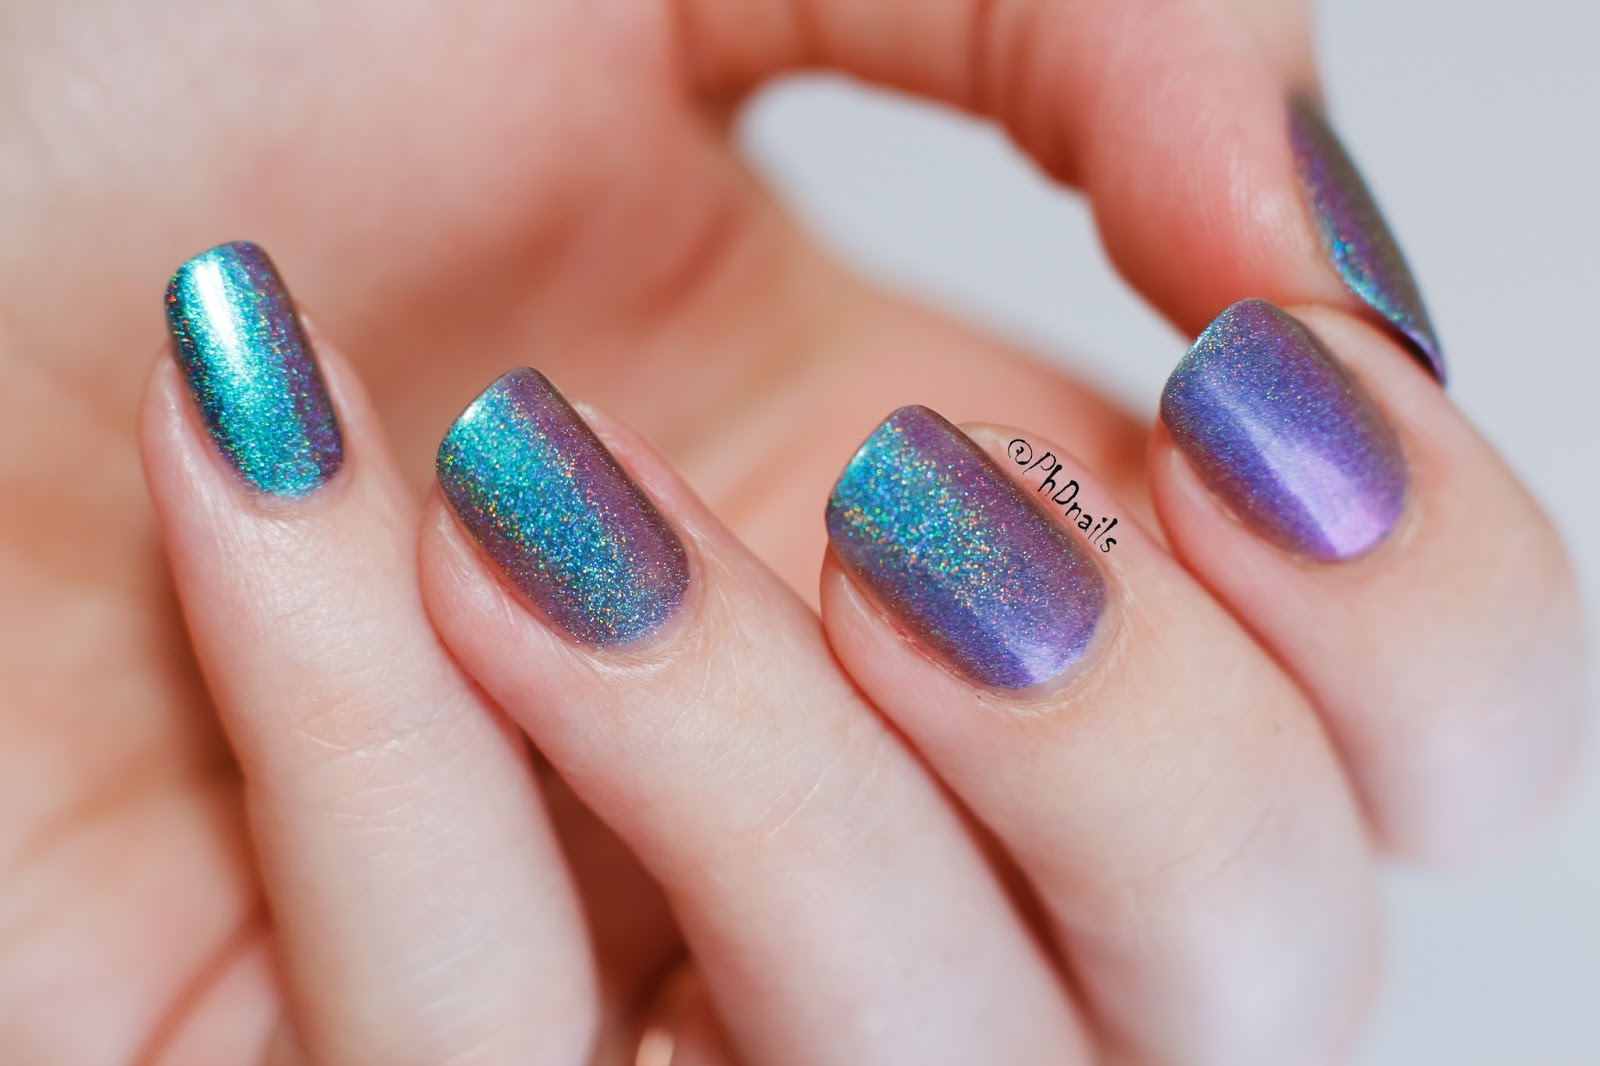 PhD nails: June macro challenge: Enchanted polish Kids swatch.